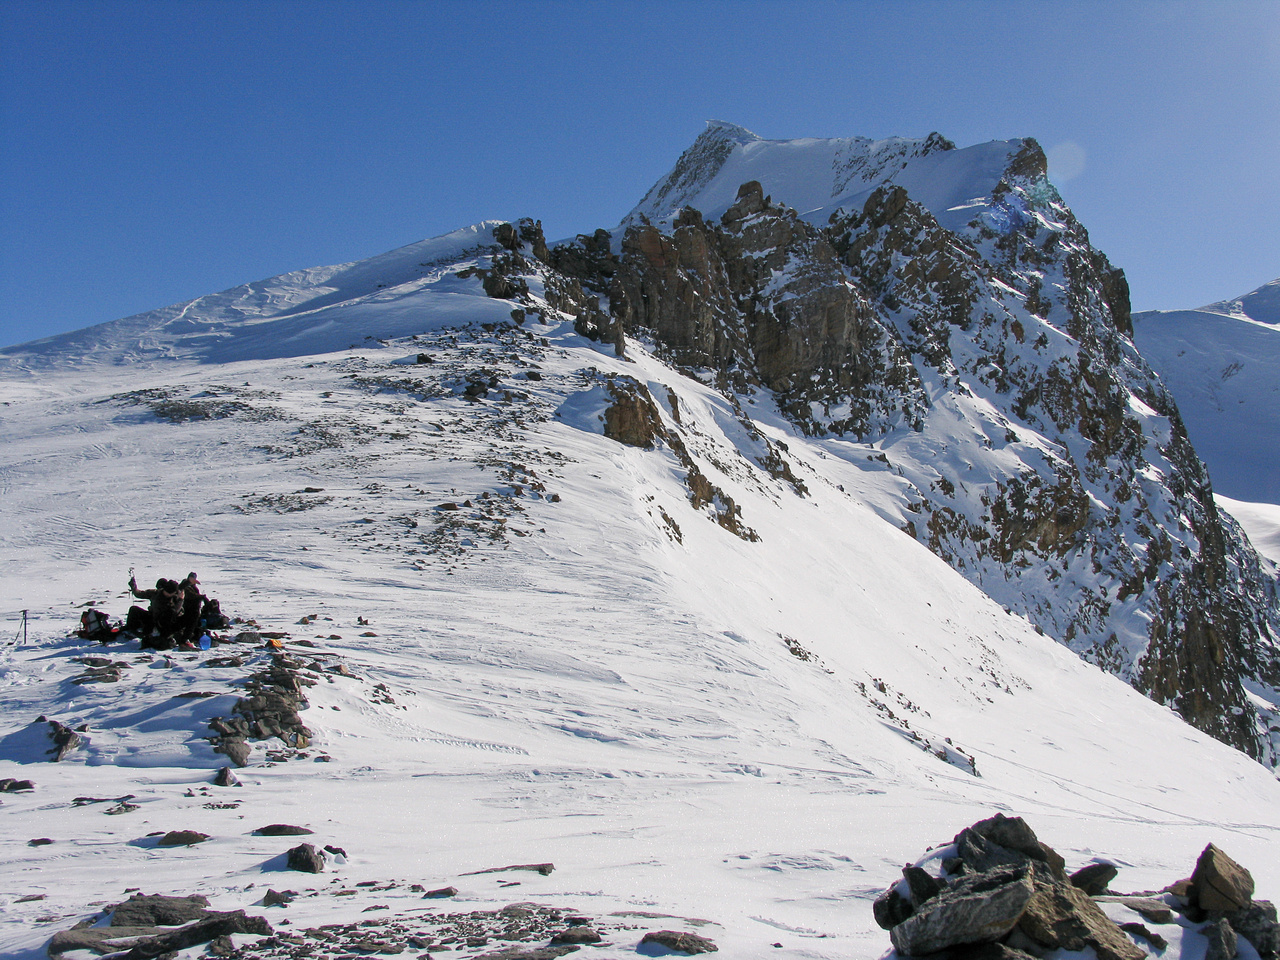 We ended up skirting the lower ridge on climber's left before cutting up very steep snow to the ridge proper.